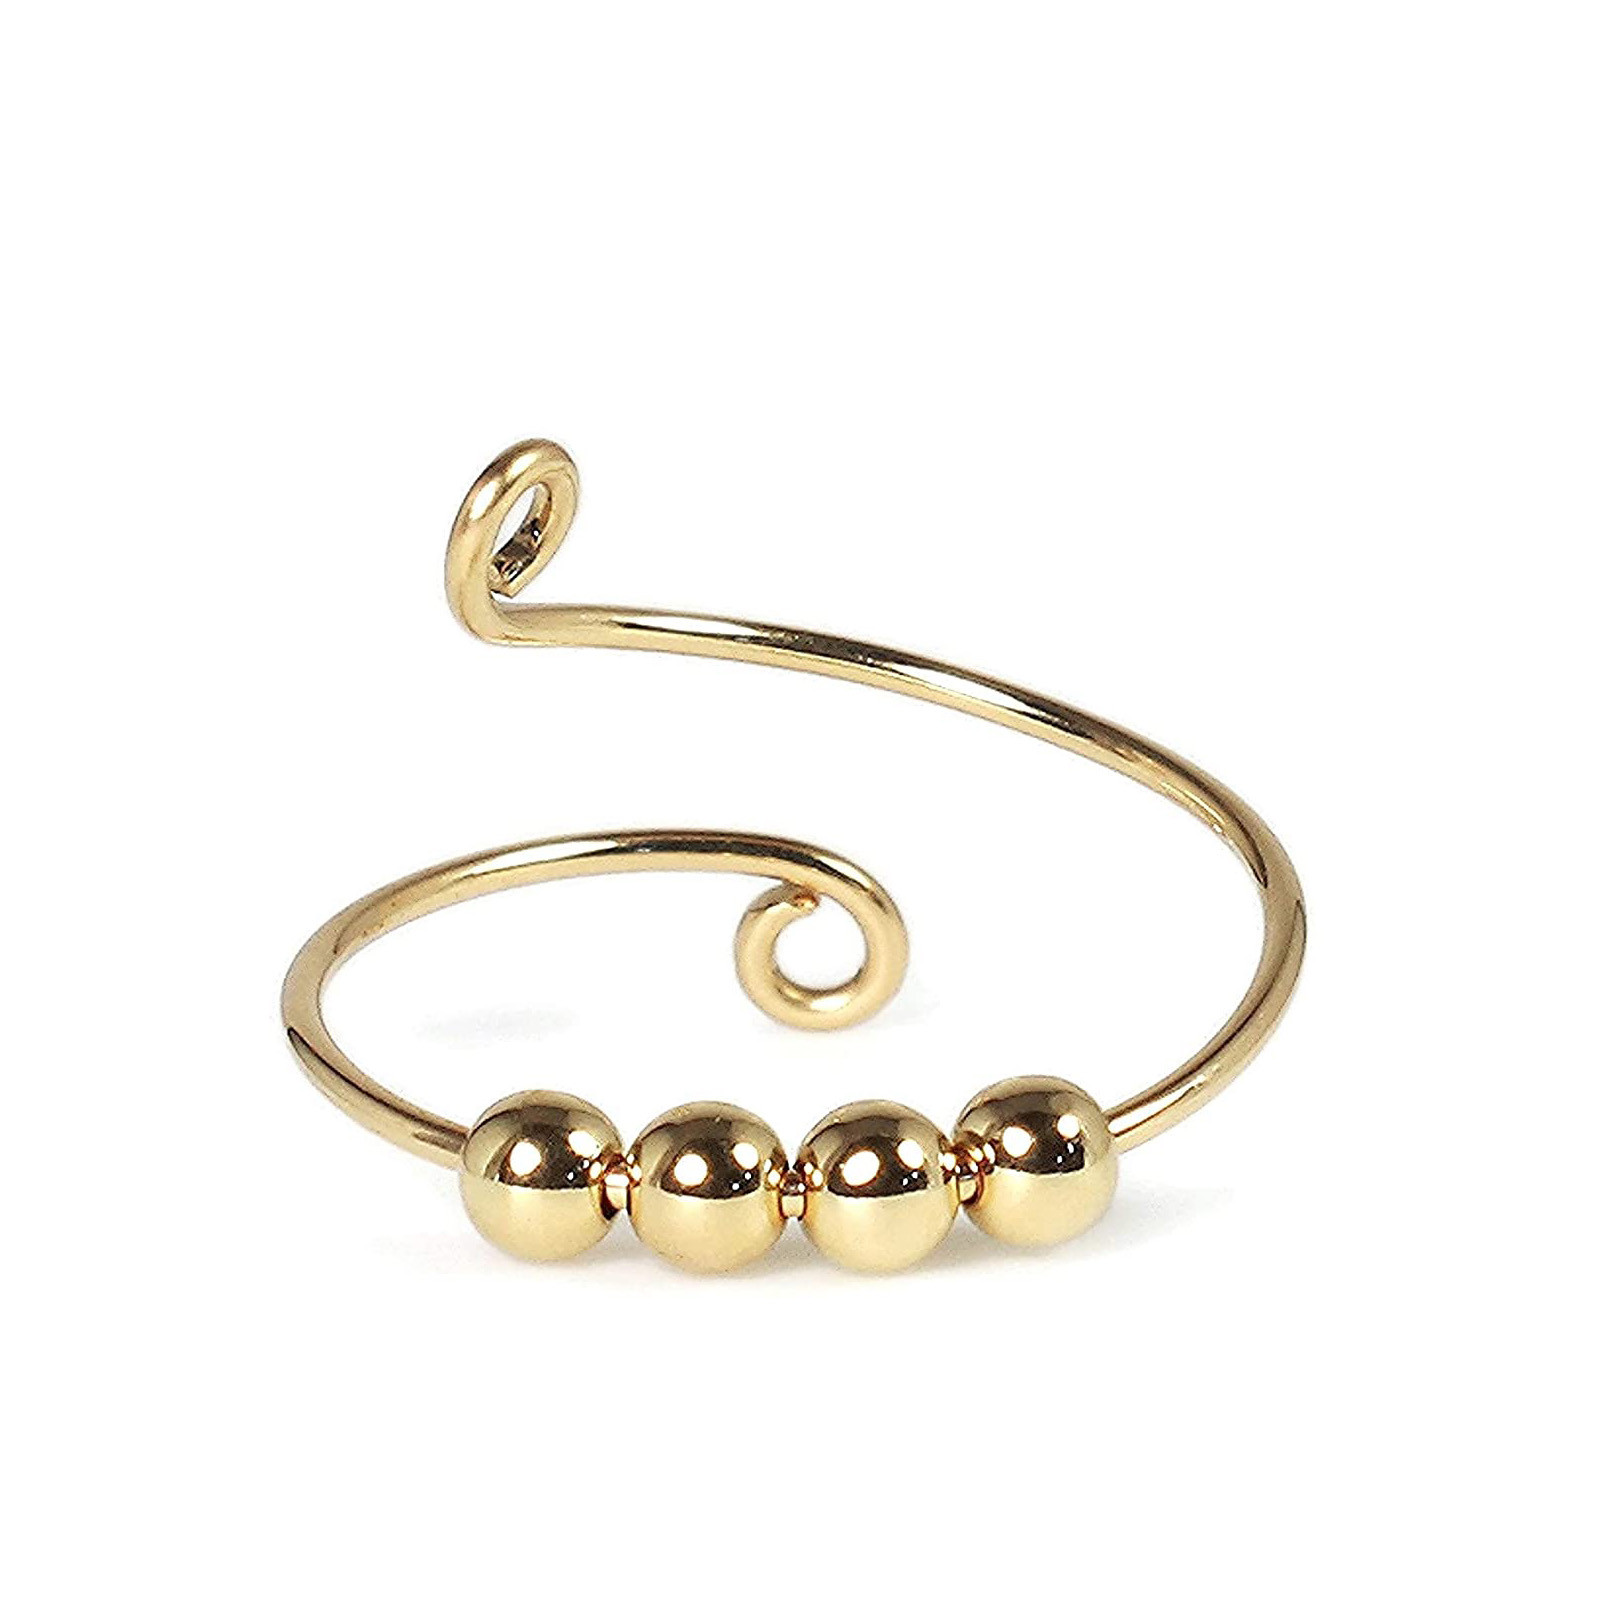 Toy Ring-Beads Fidget-Ring Freely Stress Spiral-Anxiety Rotate Reliever Fingertip Knitting